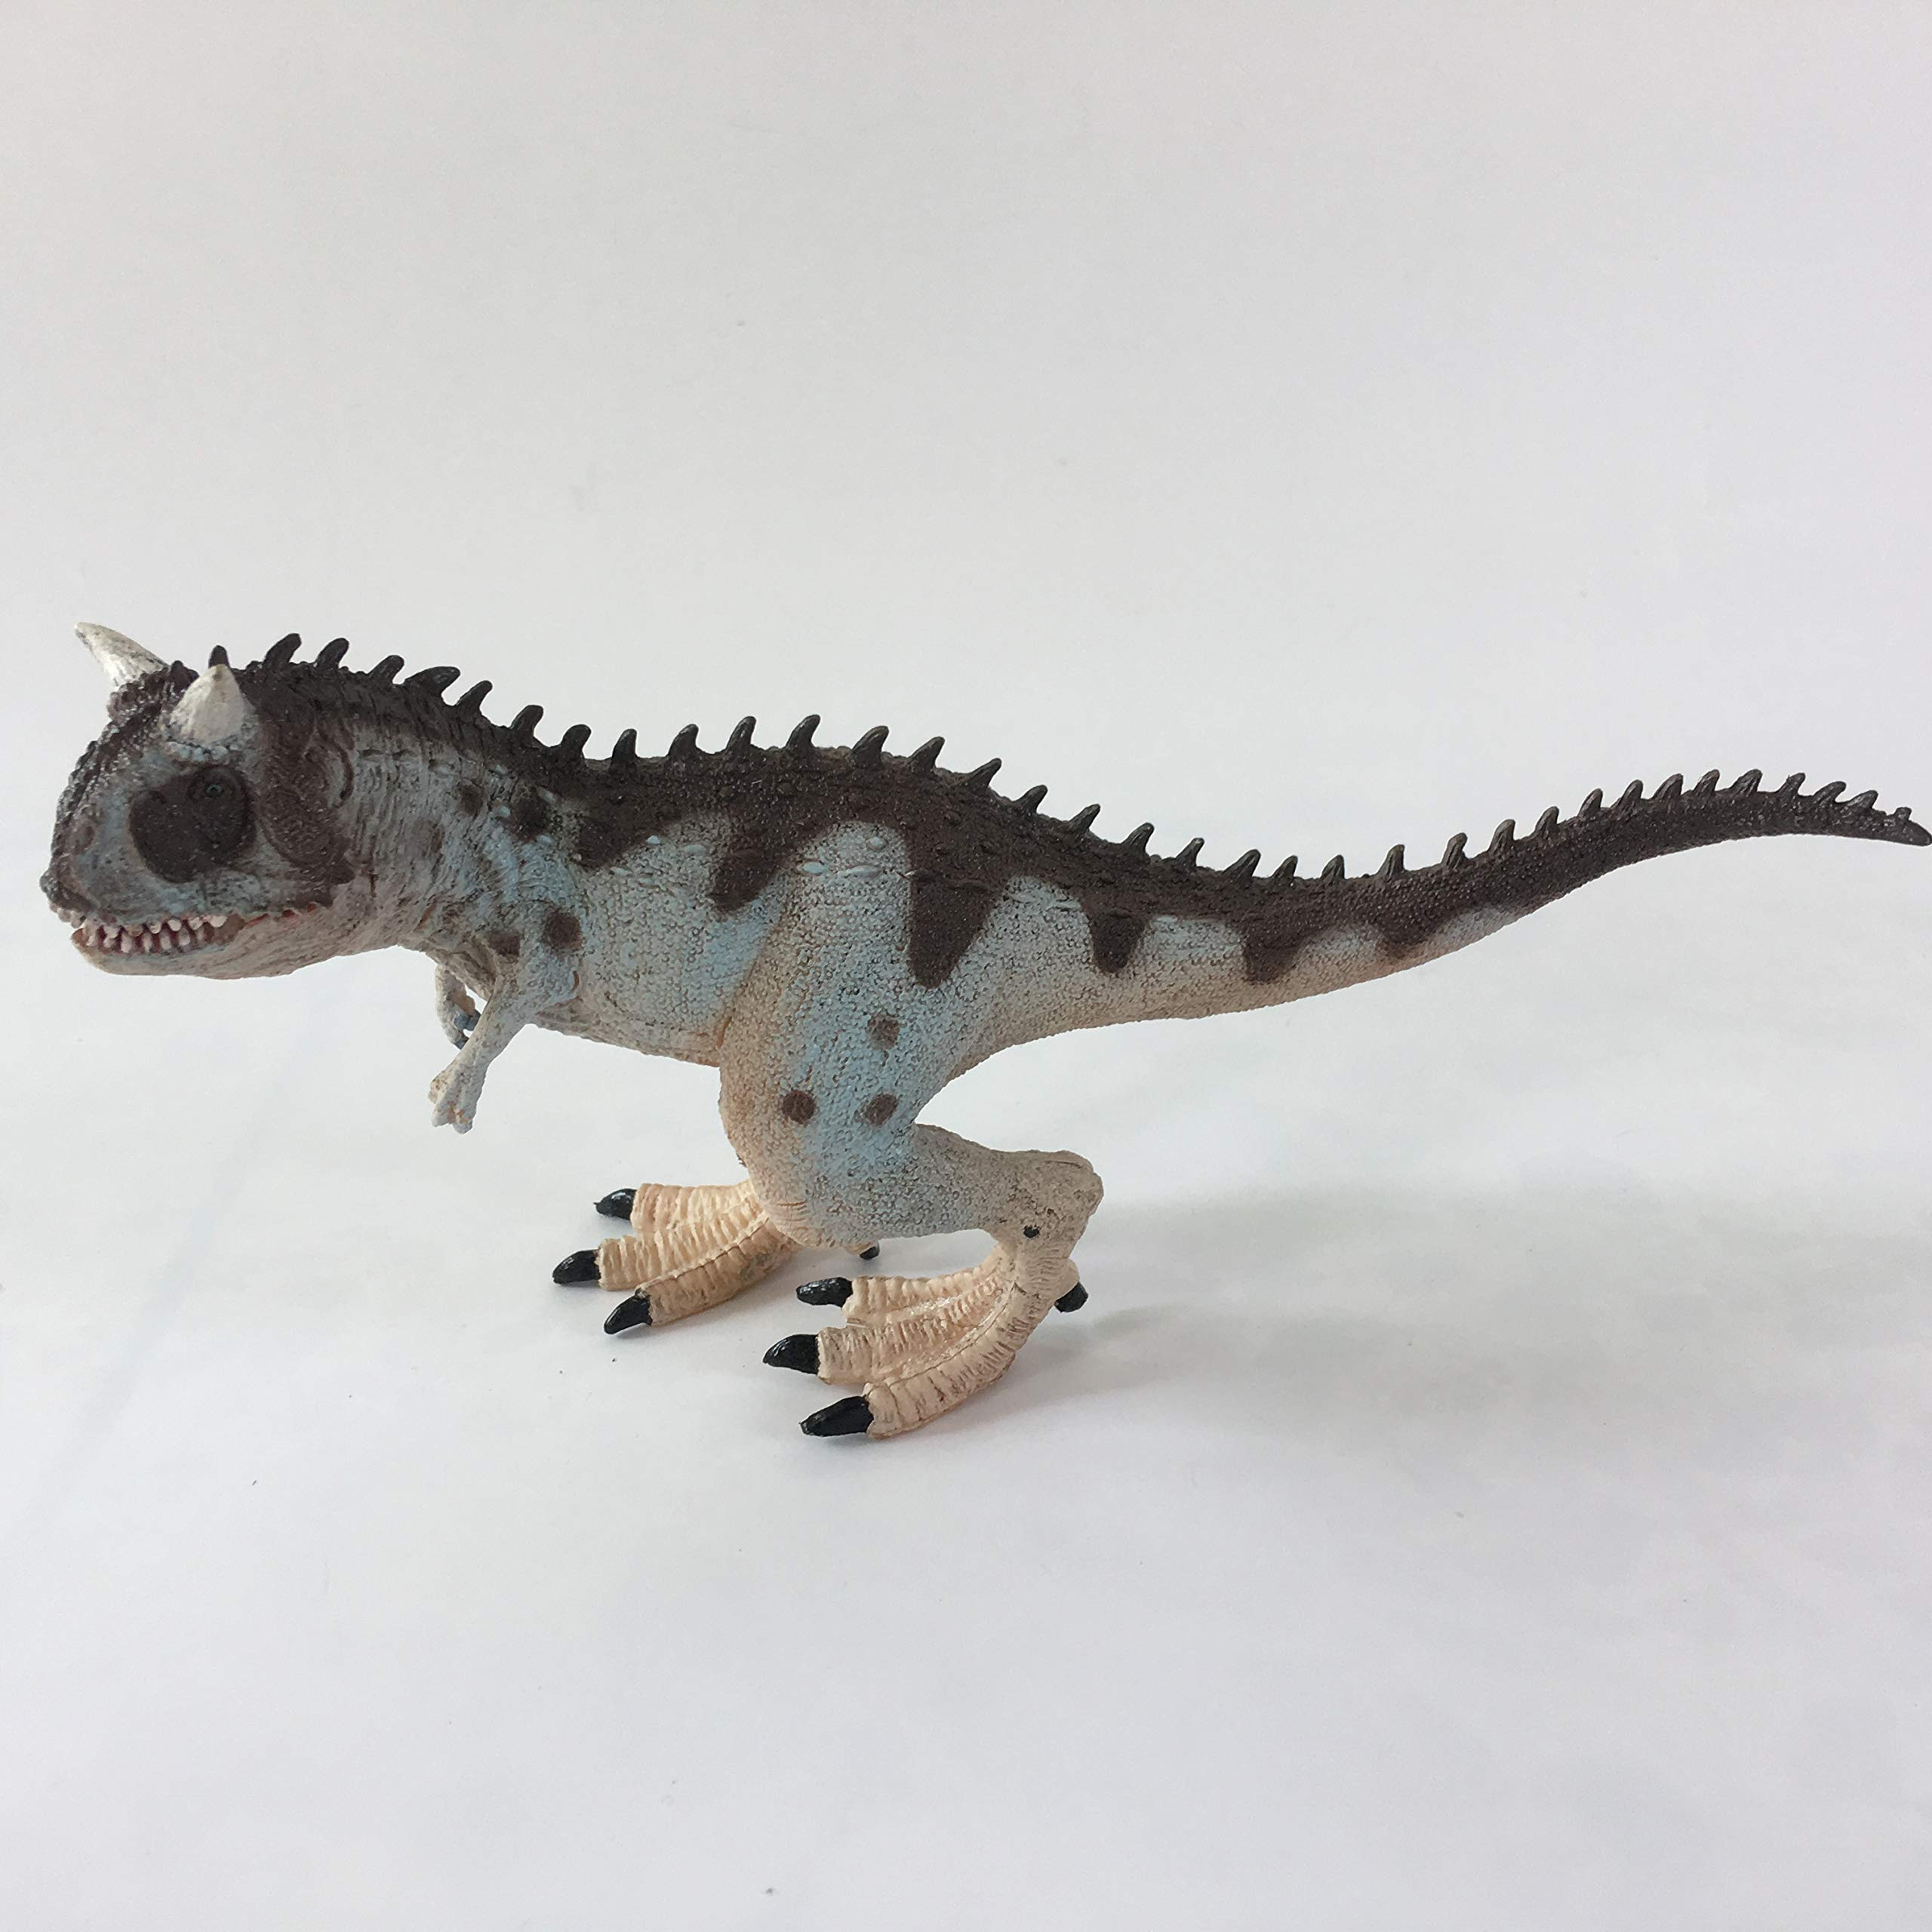 ZXLZKQ Jurassic Dinosaur Educational Dinosaur Toys for Toddlers and Older Kids Boys and Girls - M5026B